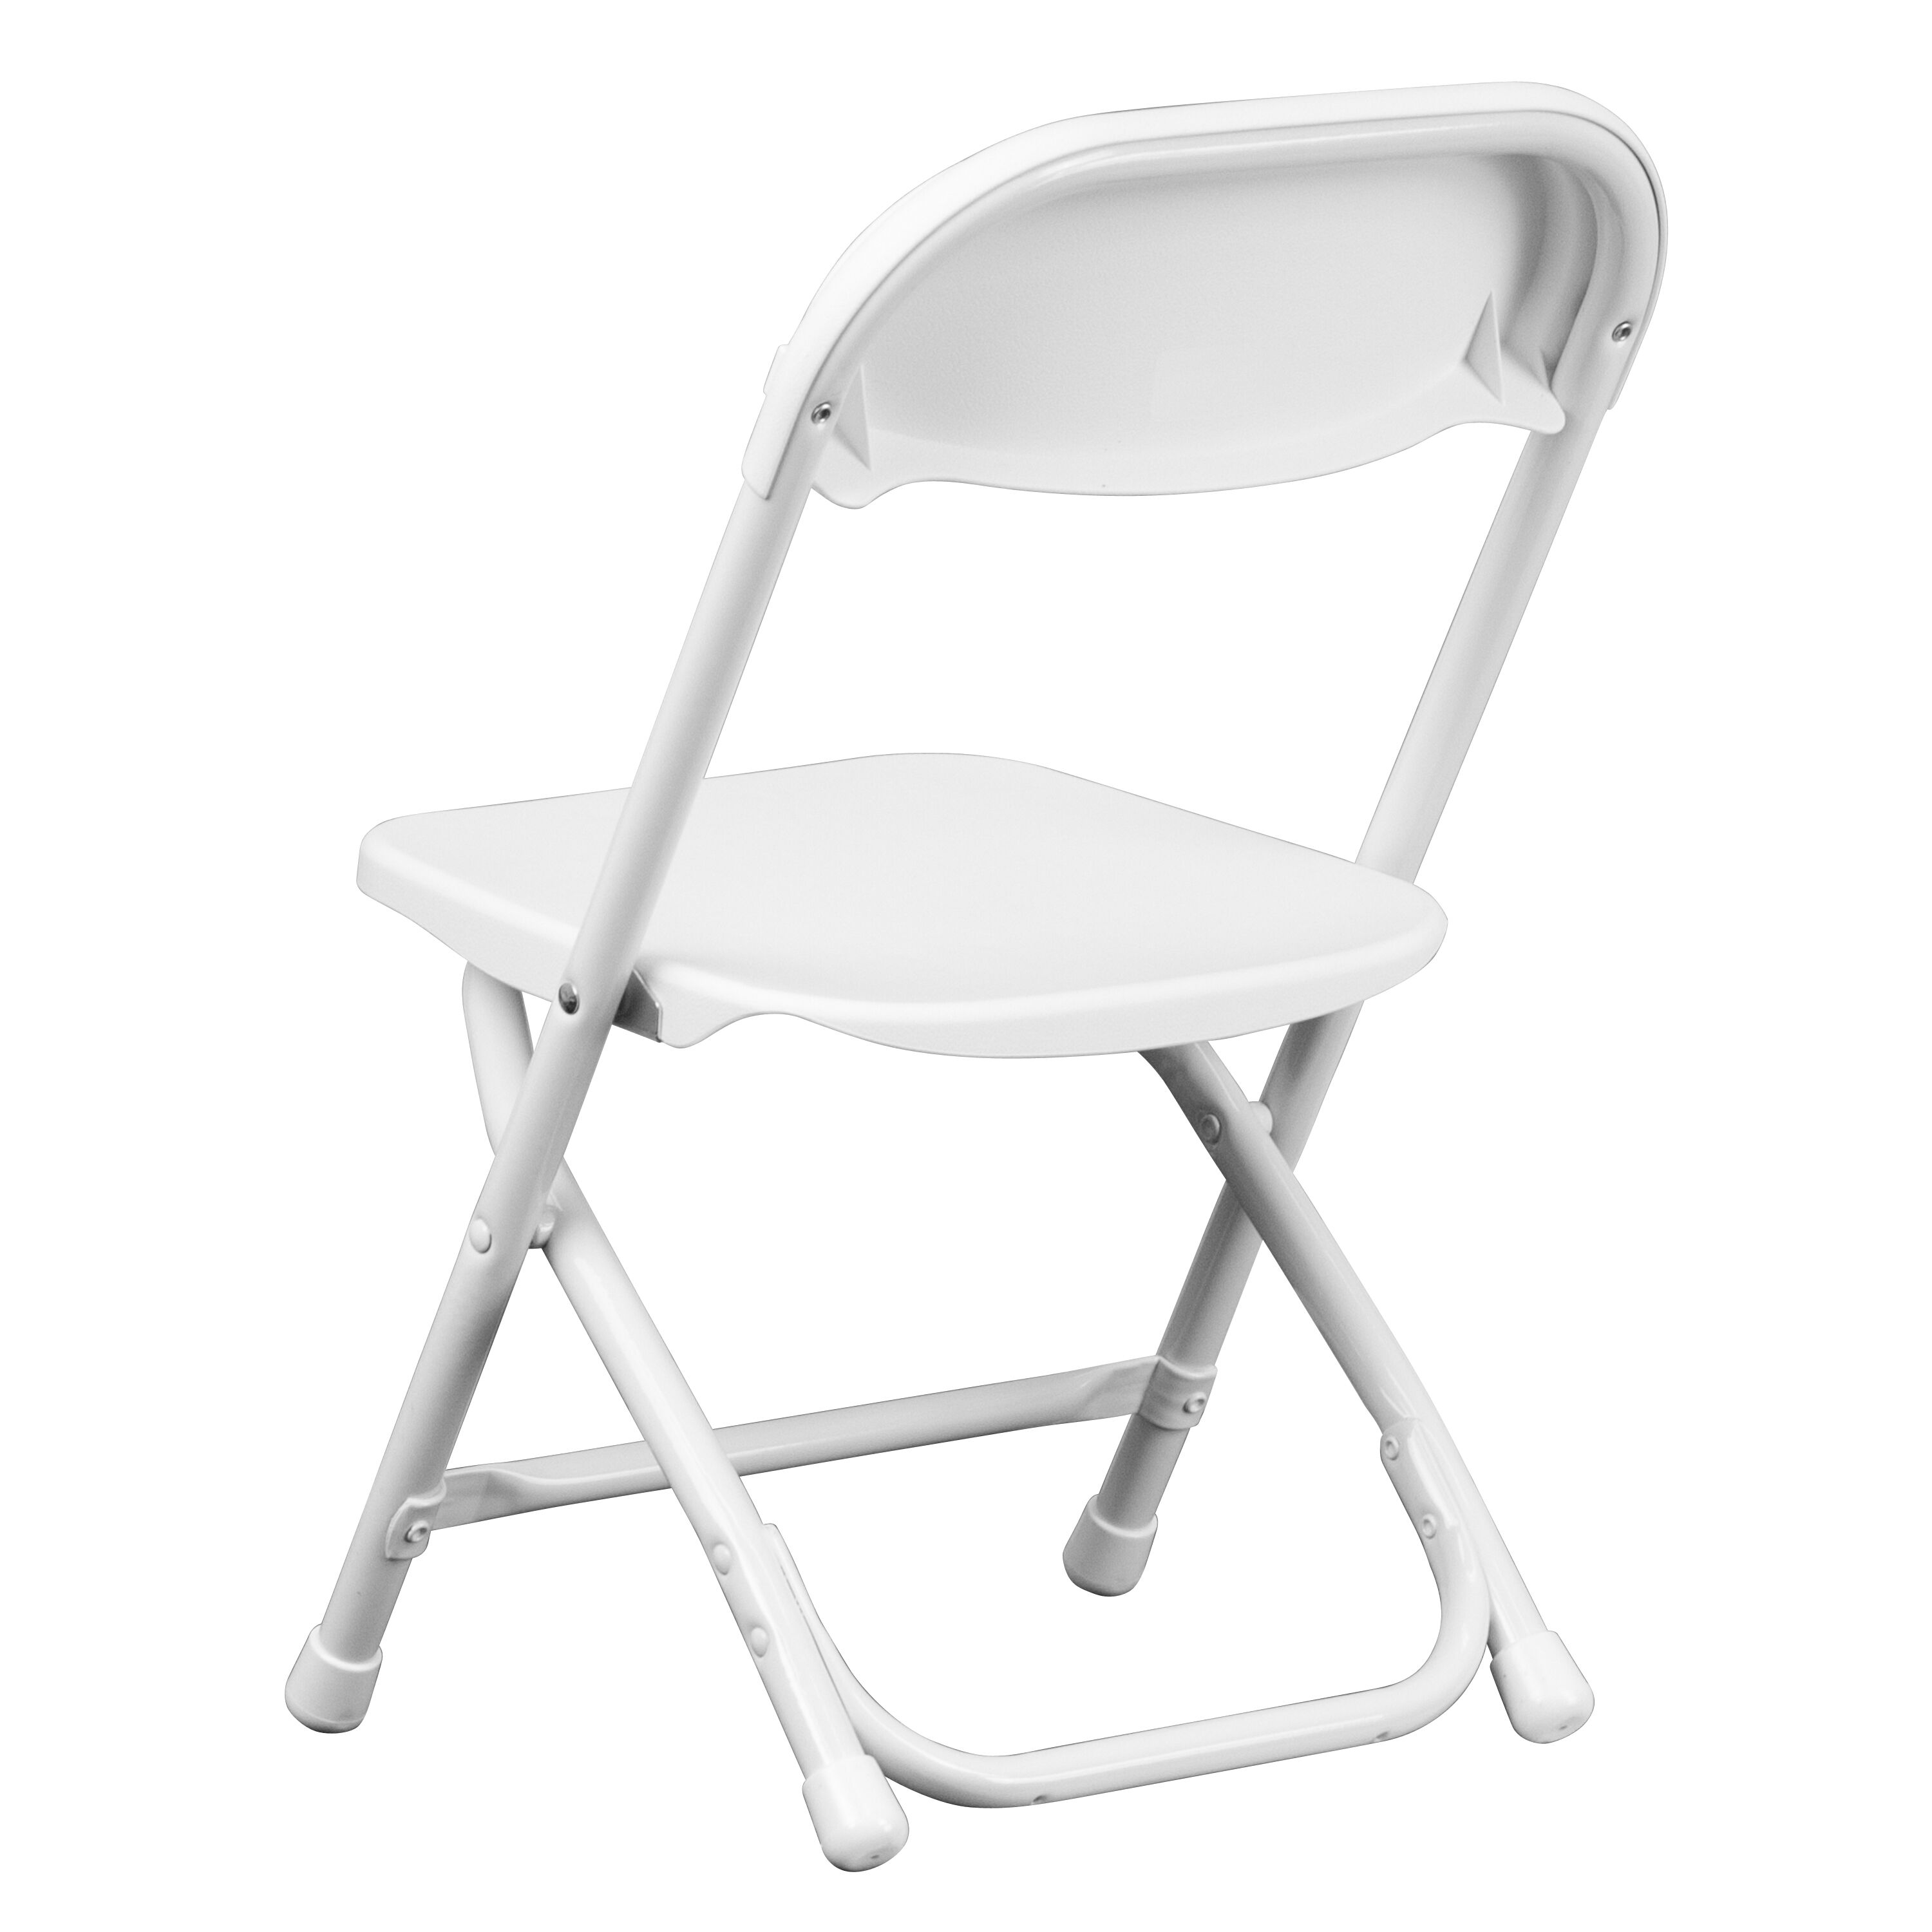 Merveilleux Our Kids White Plastic Folding Chair Is On Sale Now.